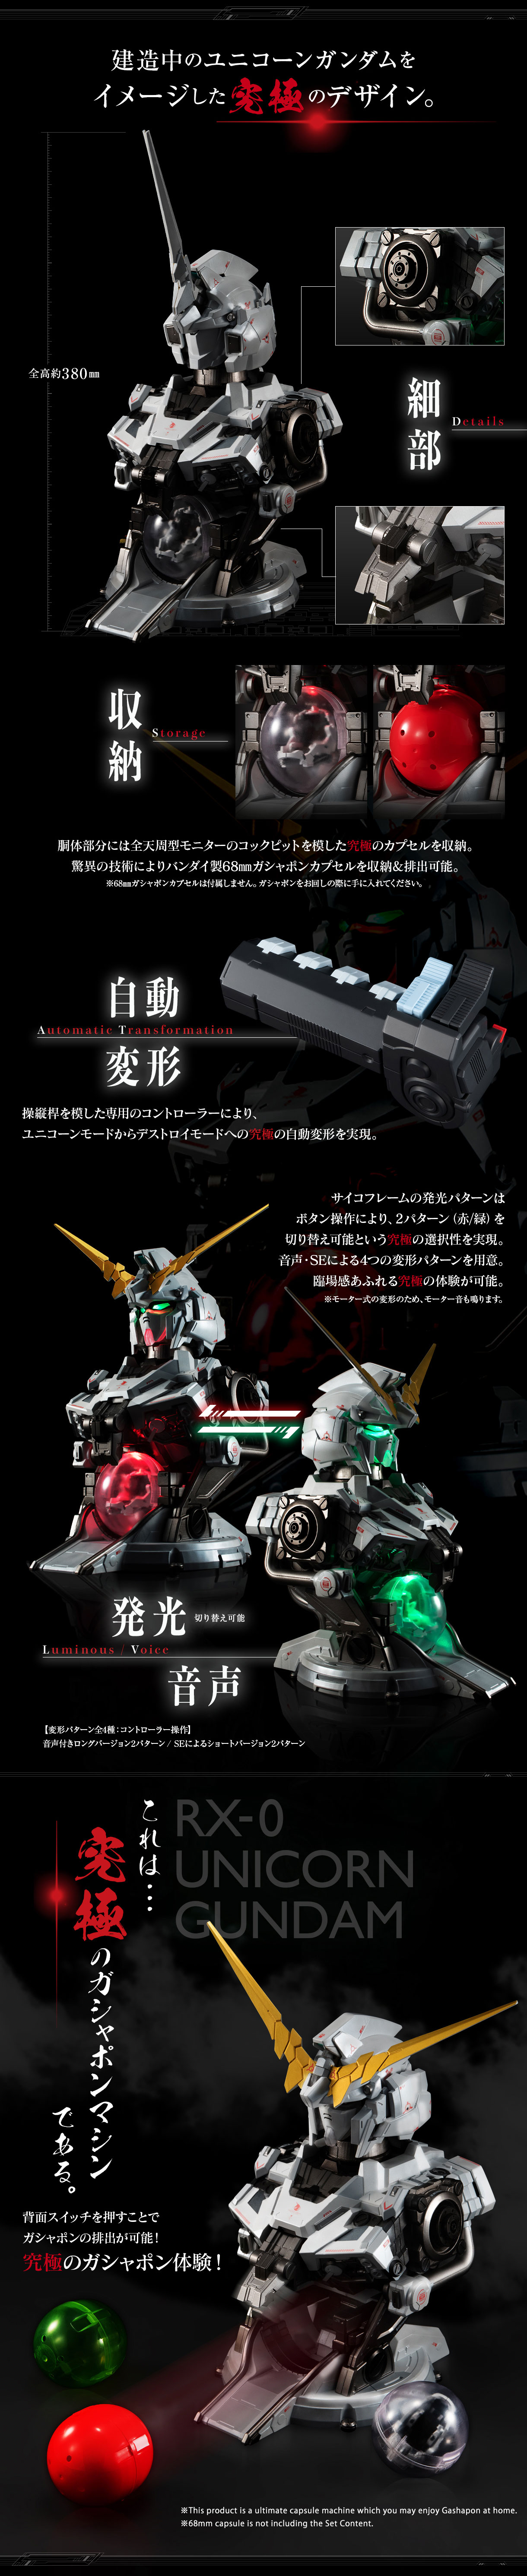 ULTIMATE MECHANIX-UNICORN GUNDAM-